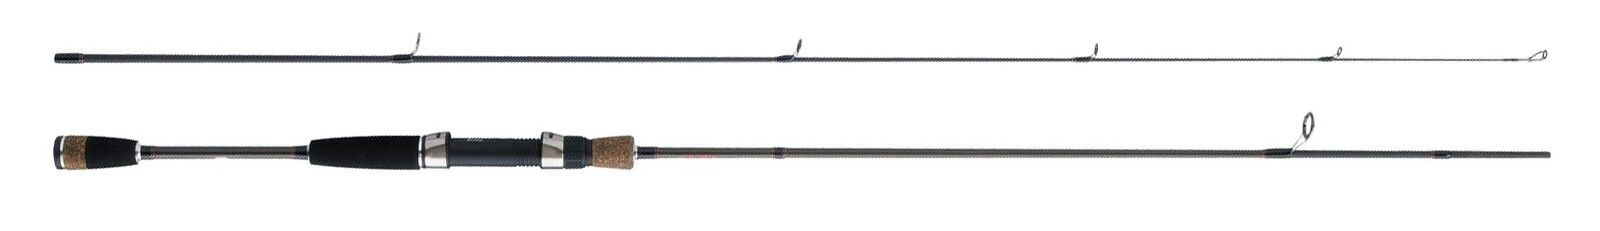 Berkley FIREFLEX Spinning Rods - All Models